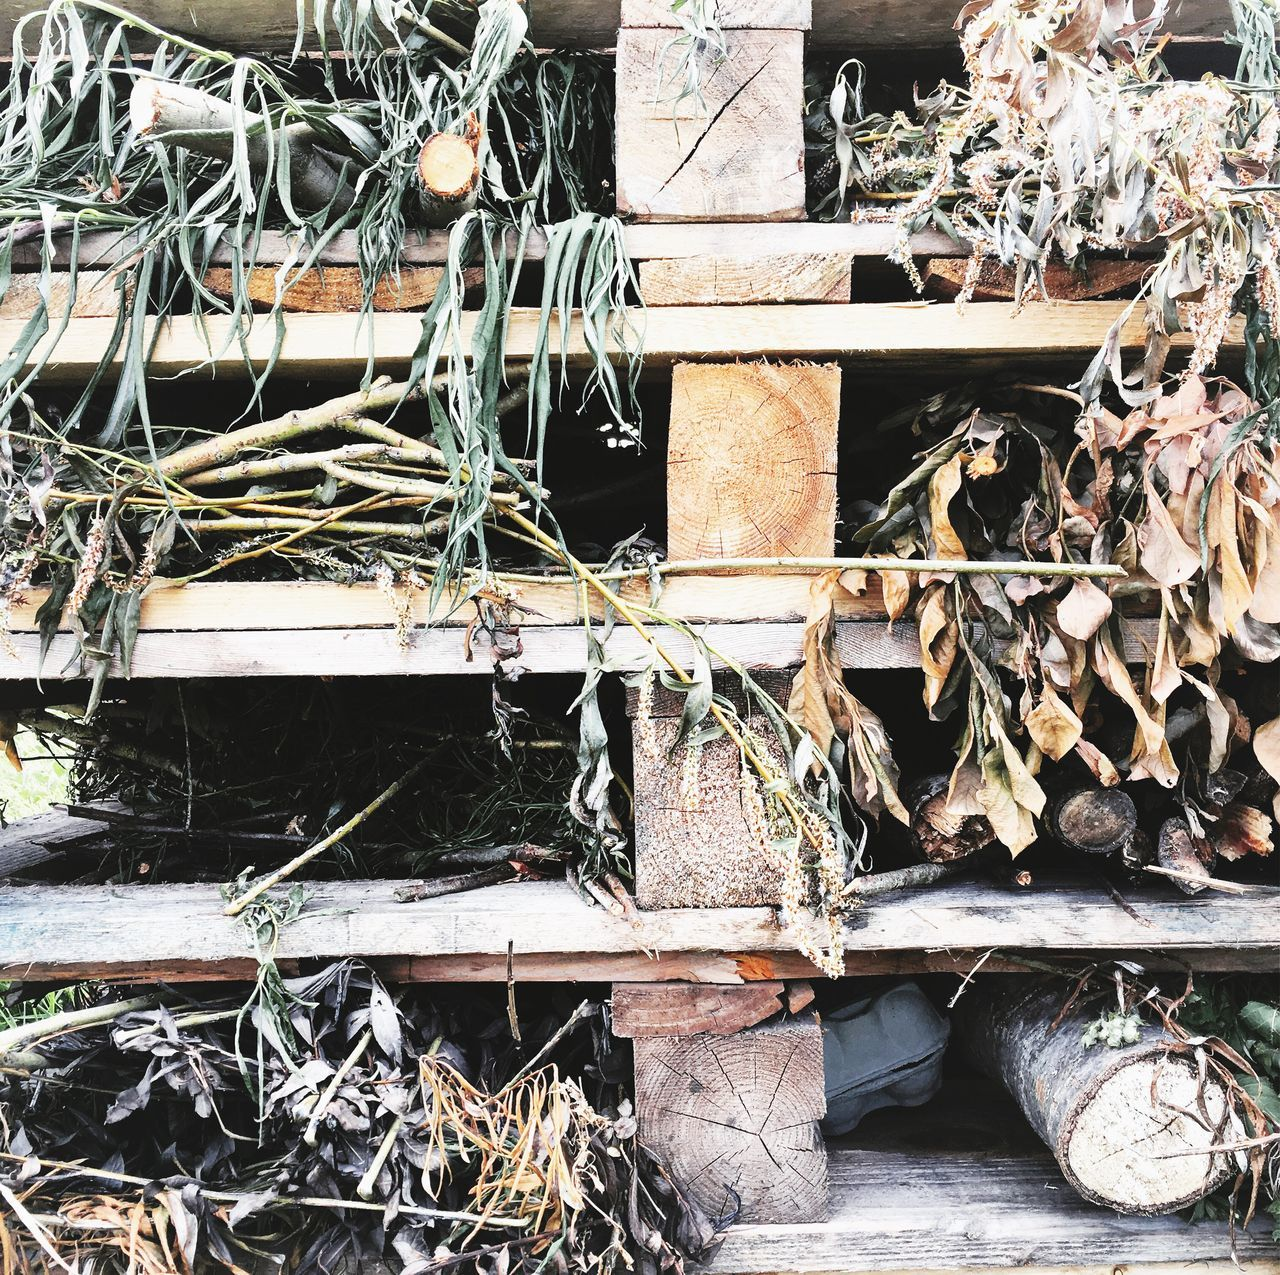 Insect hotel Stack No People Day Outdoors Bugs Beauty In Nature Buglife NatureReserve Nature